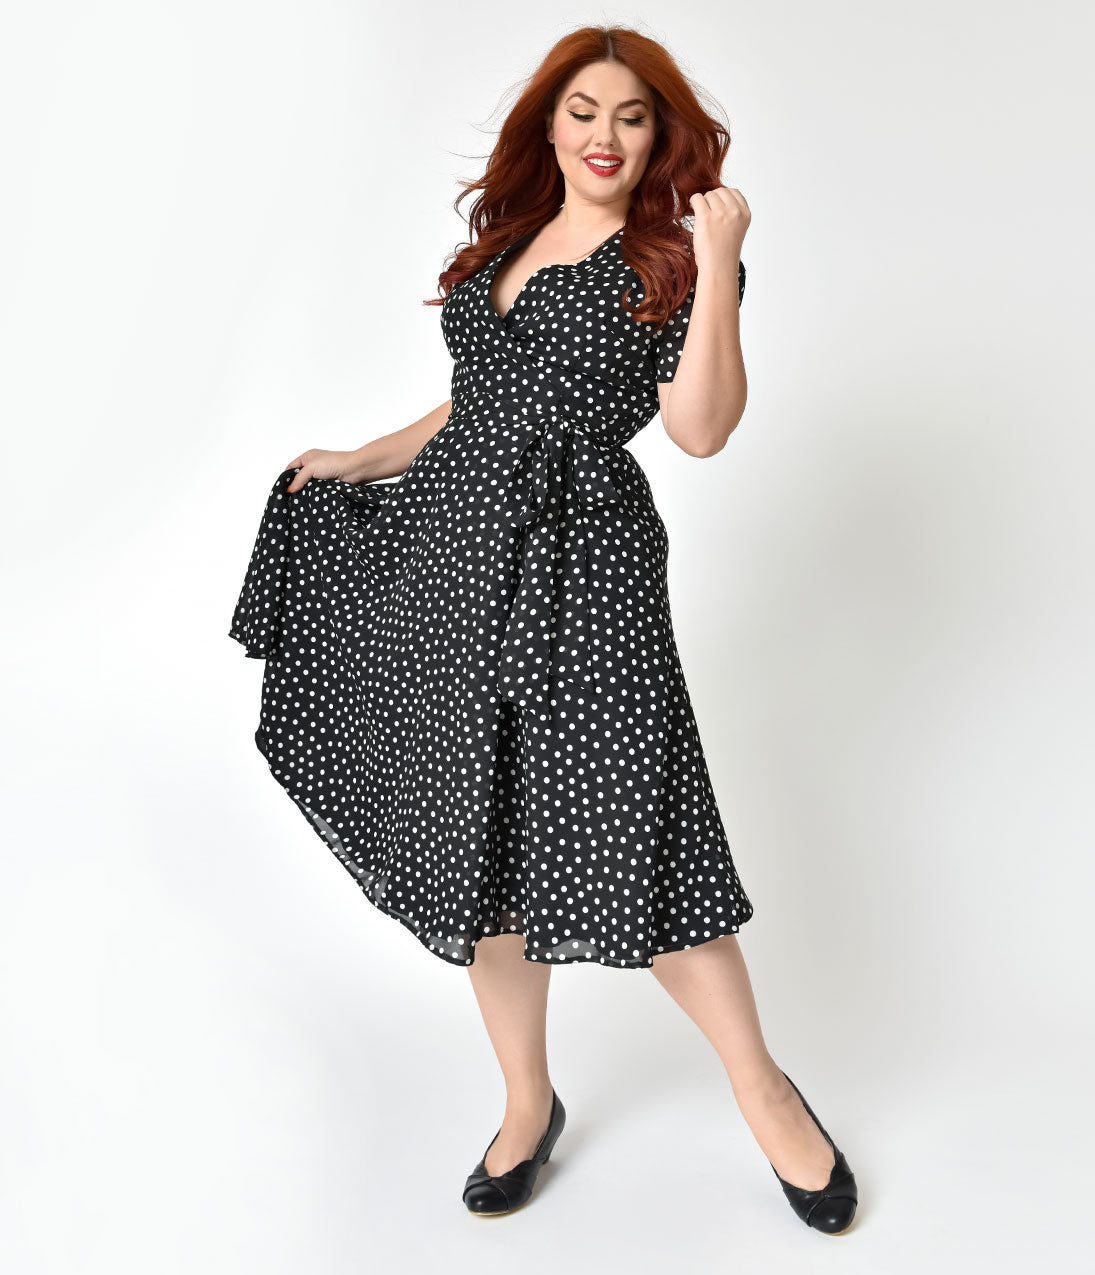 1930s Art Deco Plus Size Dresses | Tea Dresses, Party Dresses The Pretty Dress Company Plus Size 1940S Black  Ivory Polka Dot Wrap Dress $147.00 AT vintagedancer.com